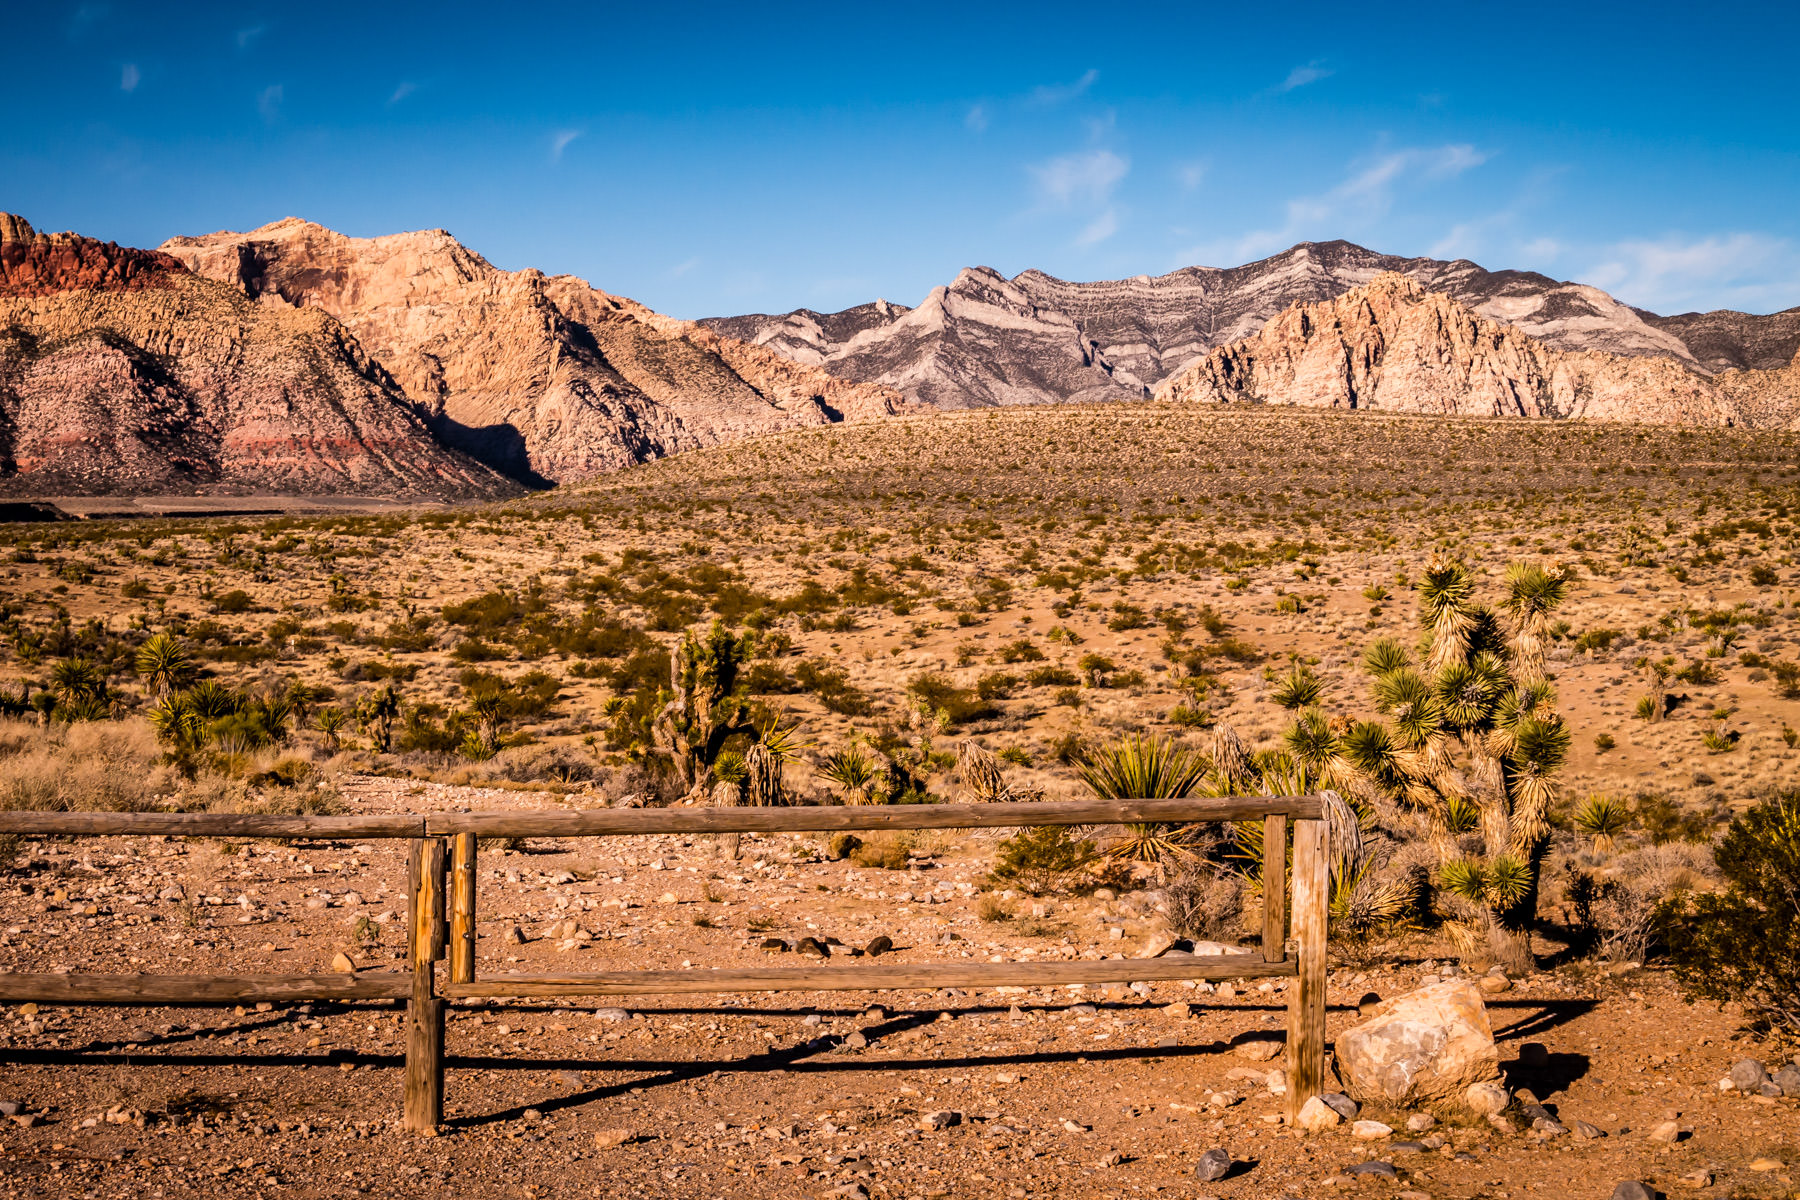 A weathered fence among the desert brush at Nevada's Red Rock Canyon.